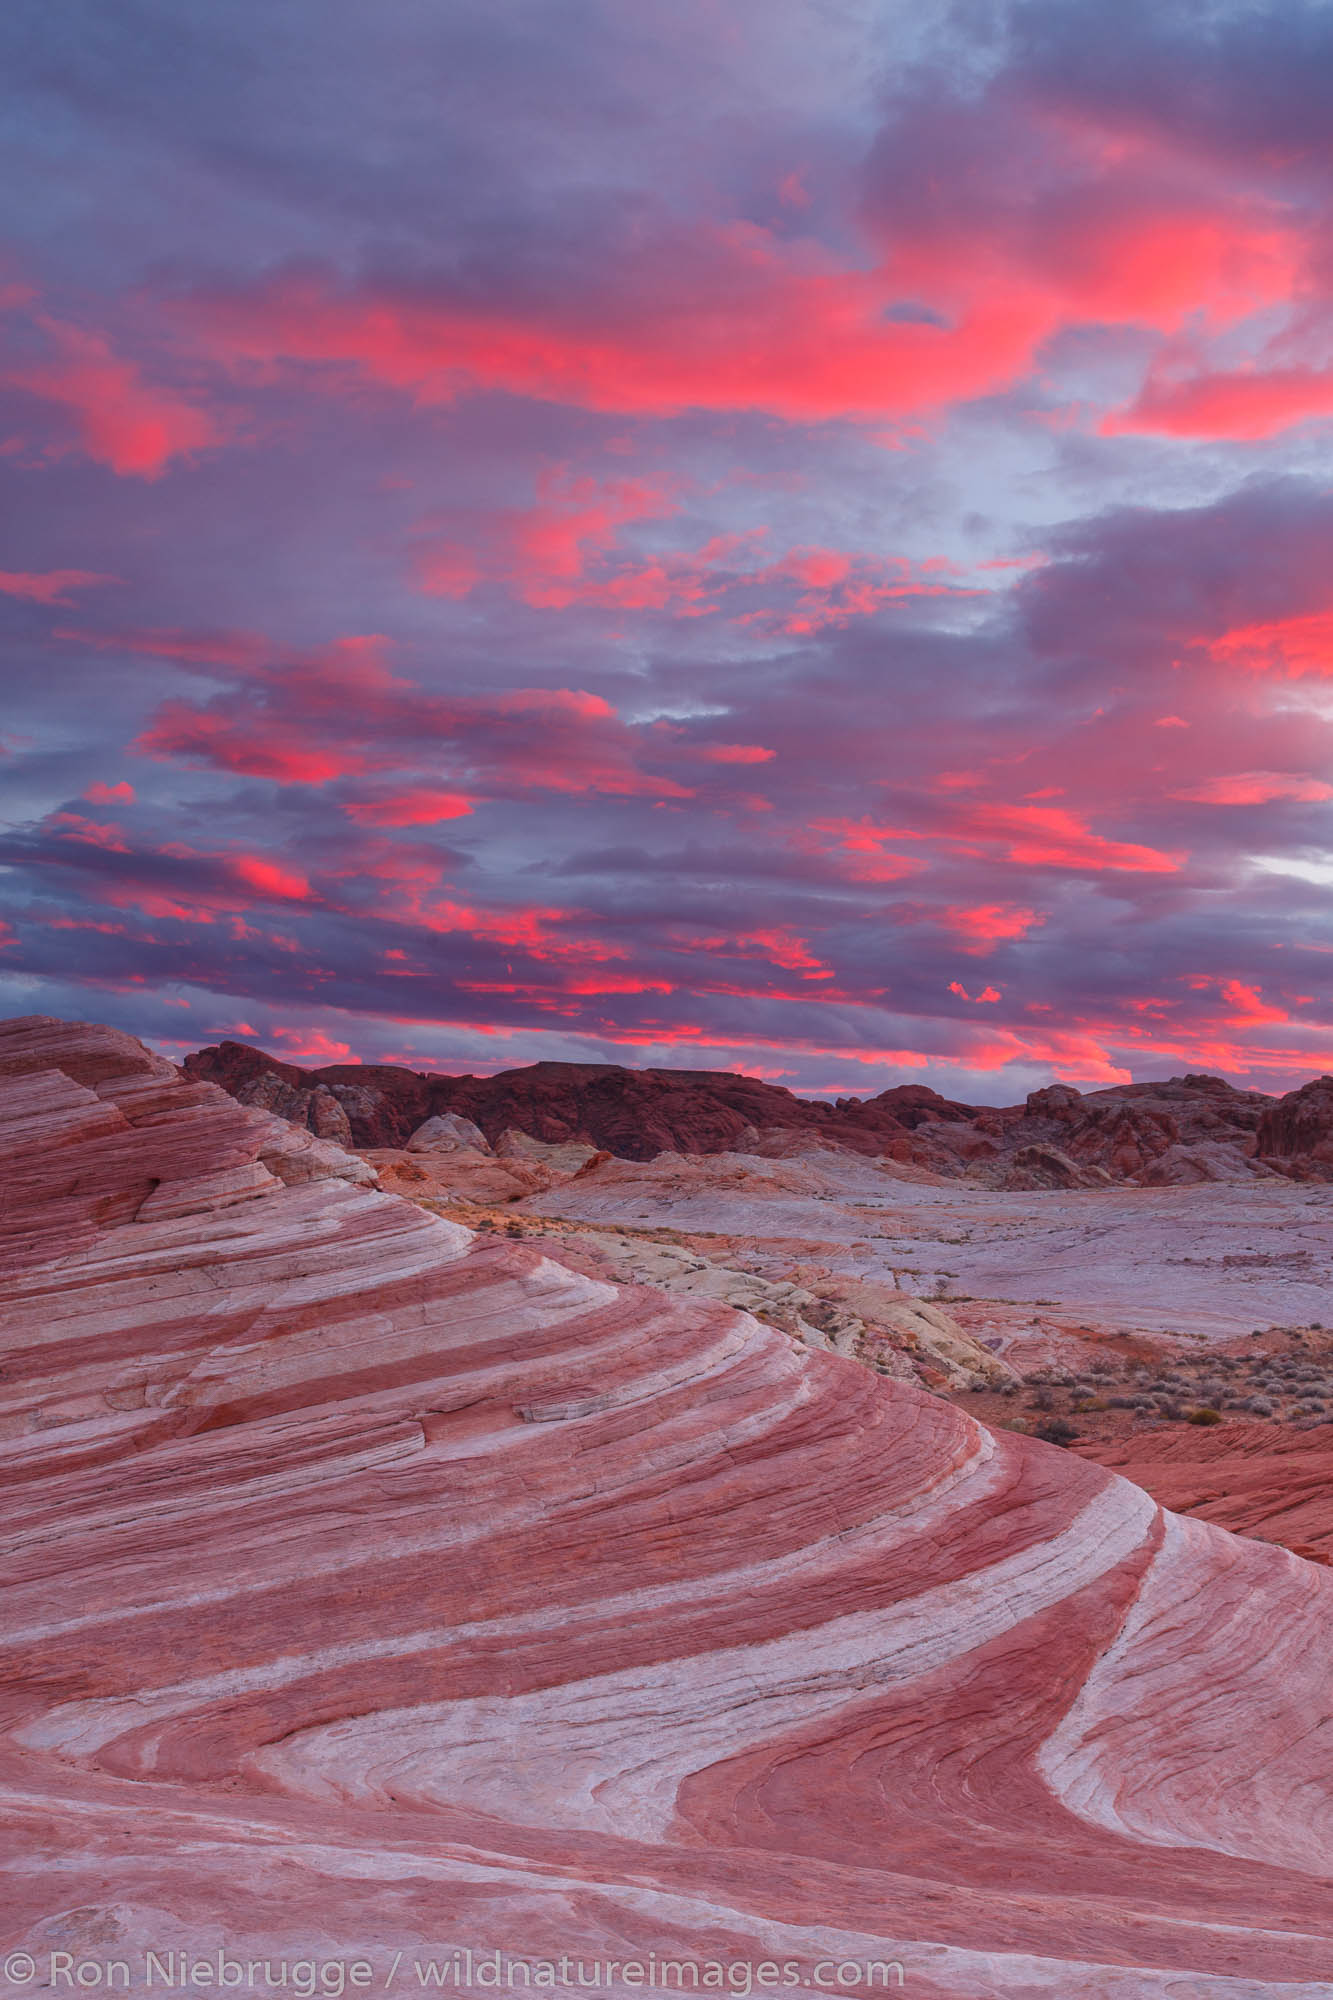 Sunset at Fire Wave, Valley of Fire State Park, not far from Las Vegas, Nevada.